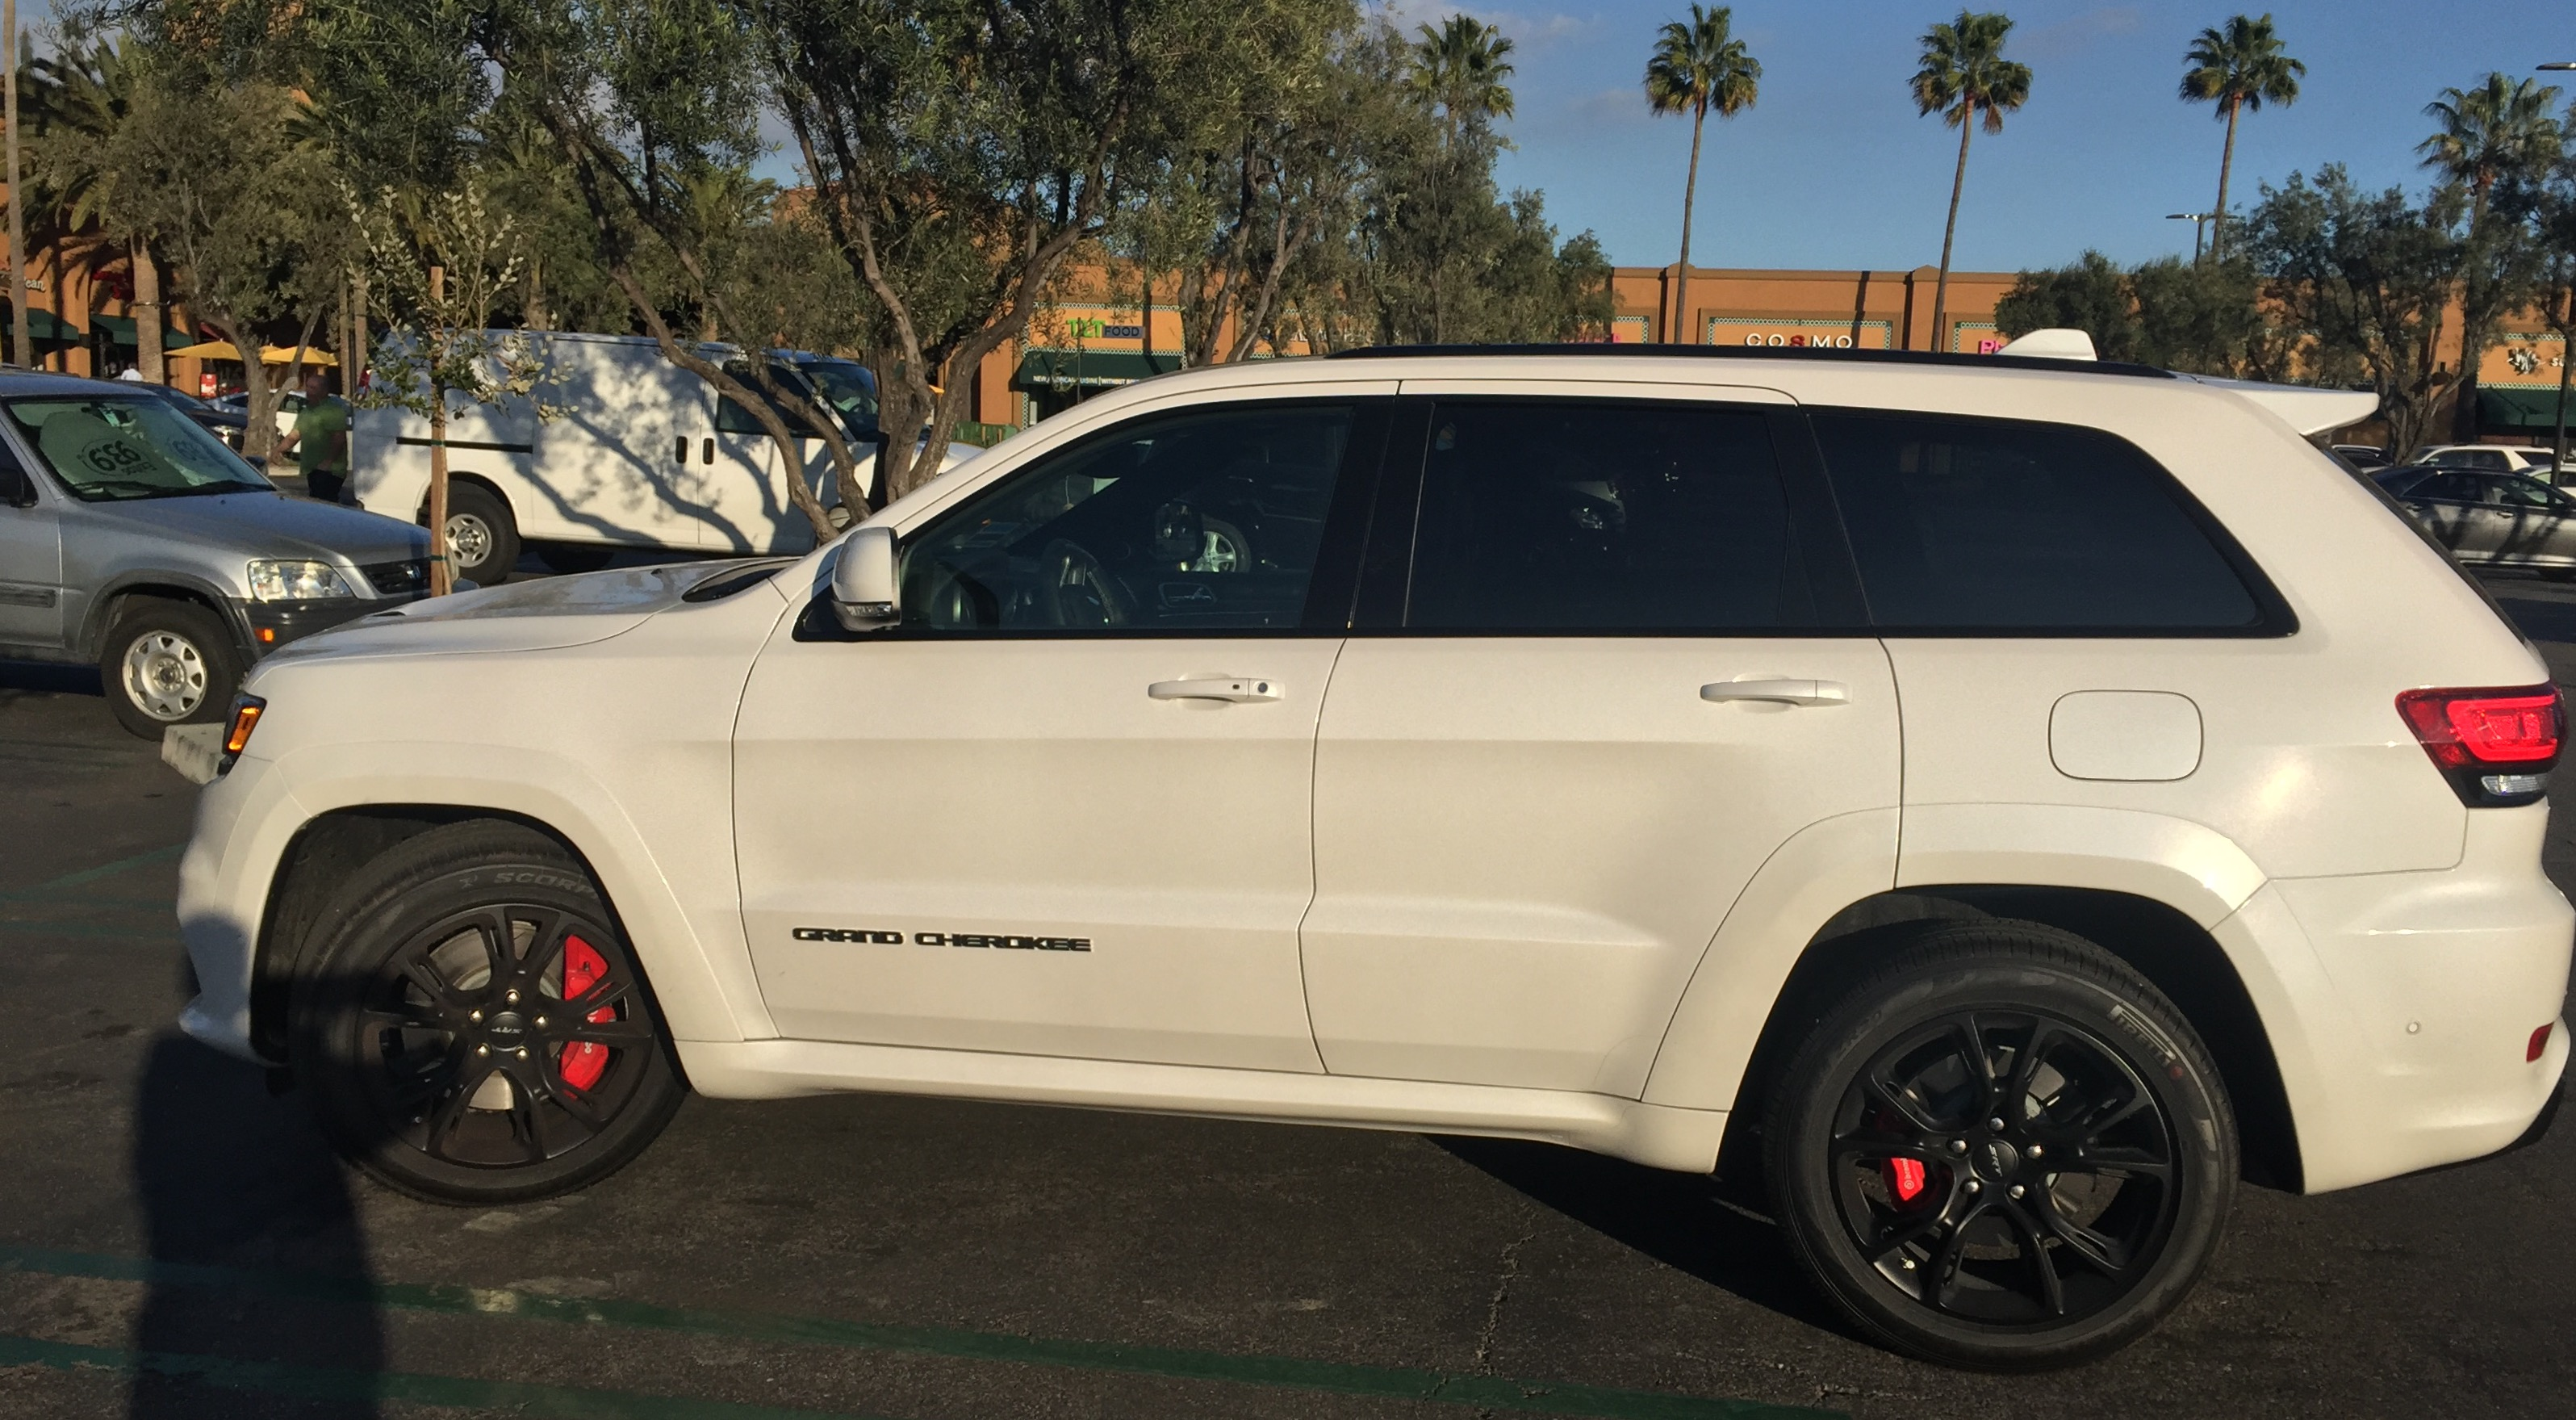 2017 Ram 1500 Srt Hellcat >> Let's see your other non-Hellcat Mopars | Page 10 | SRT Hellcat Forum